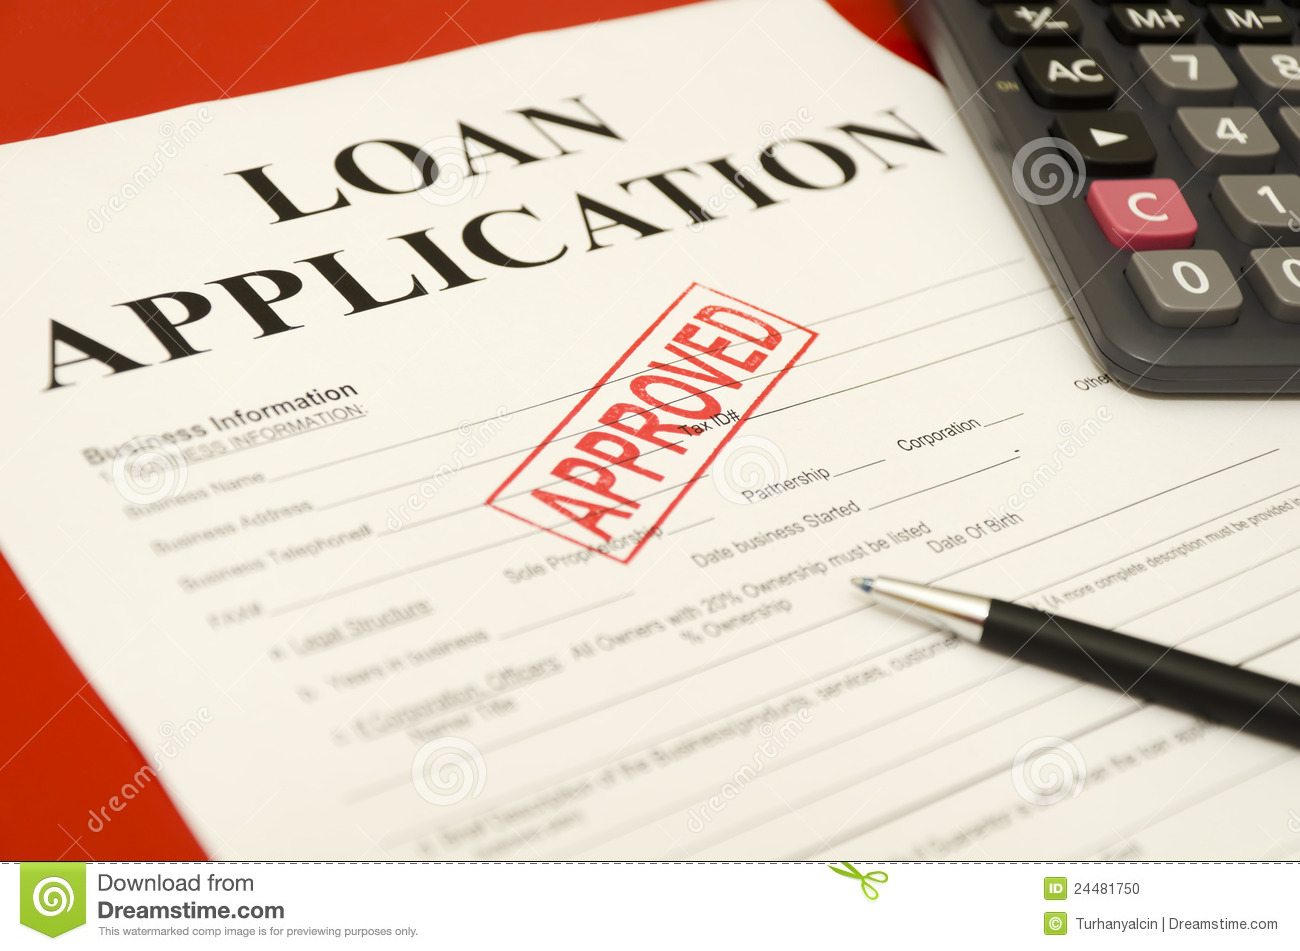 how to get approved for a small personal loan